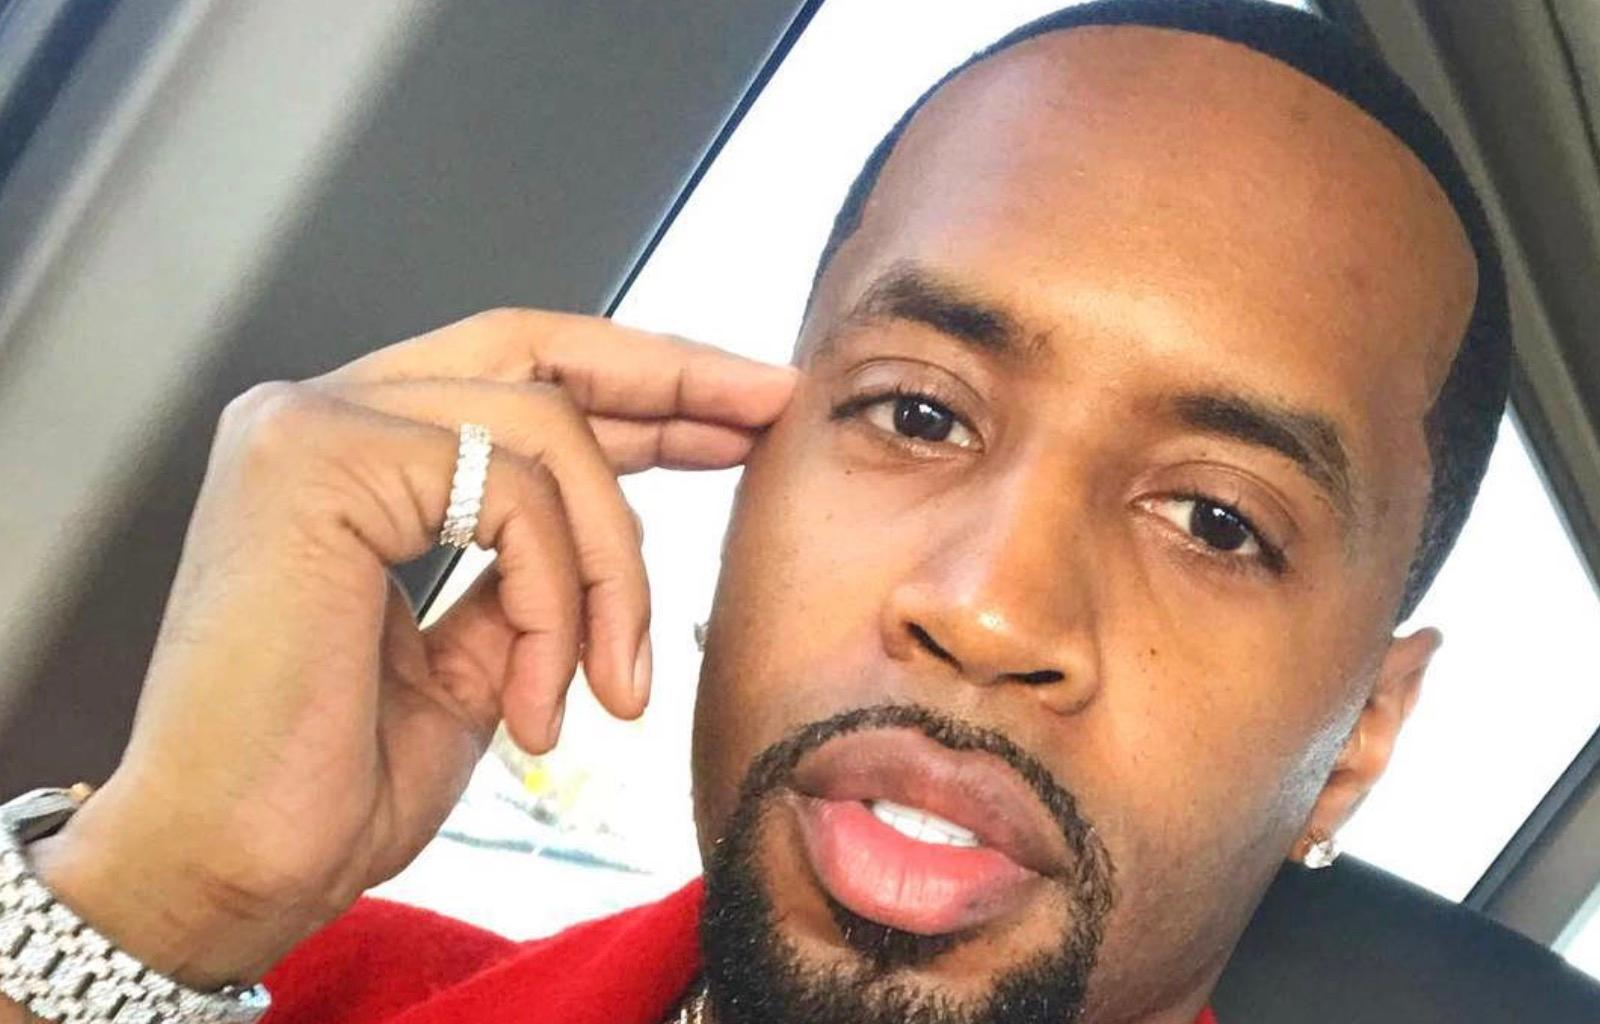 Safaree Posts New Video Showing George Floyd In Custody And The Police 'Beating The Sh*t Out Of Him'